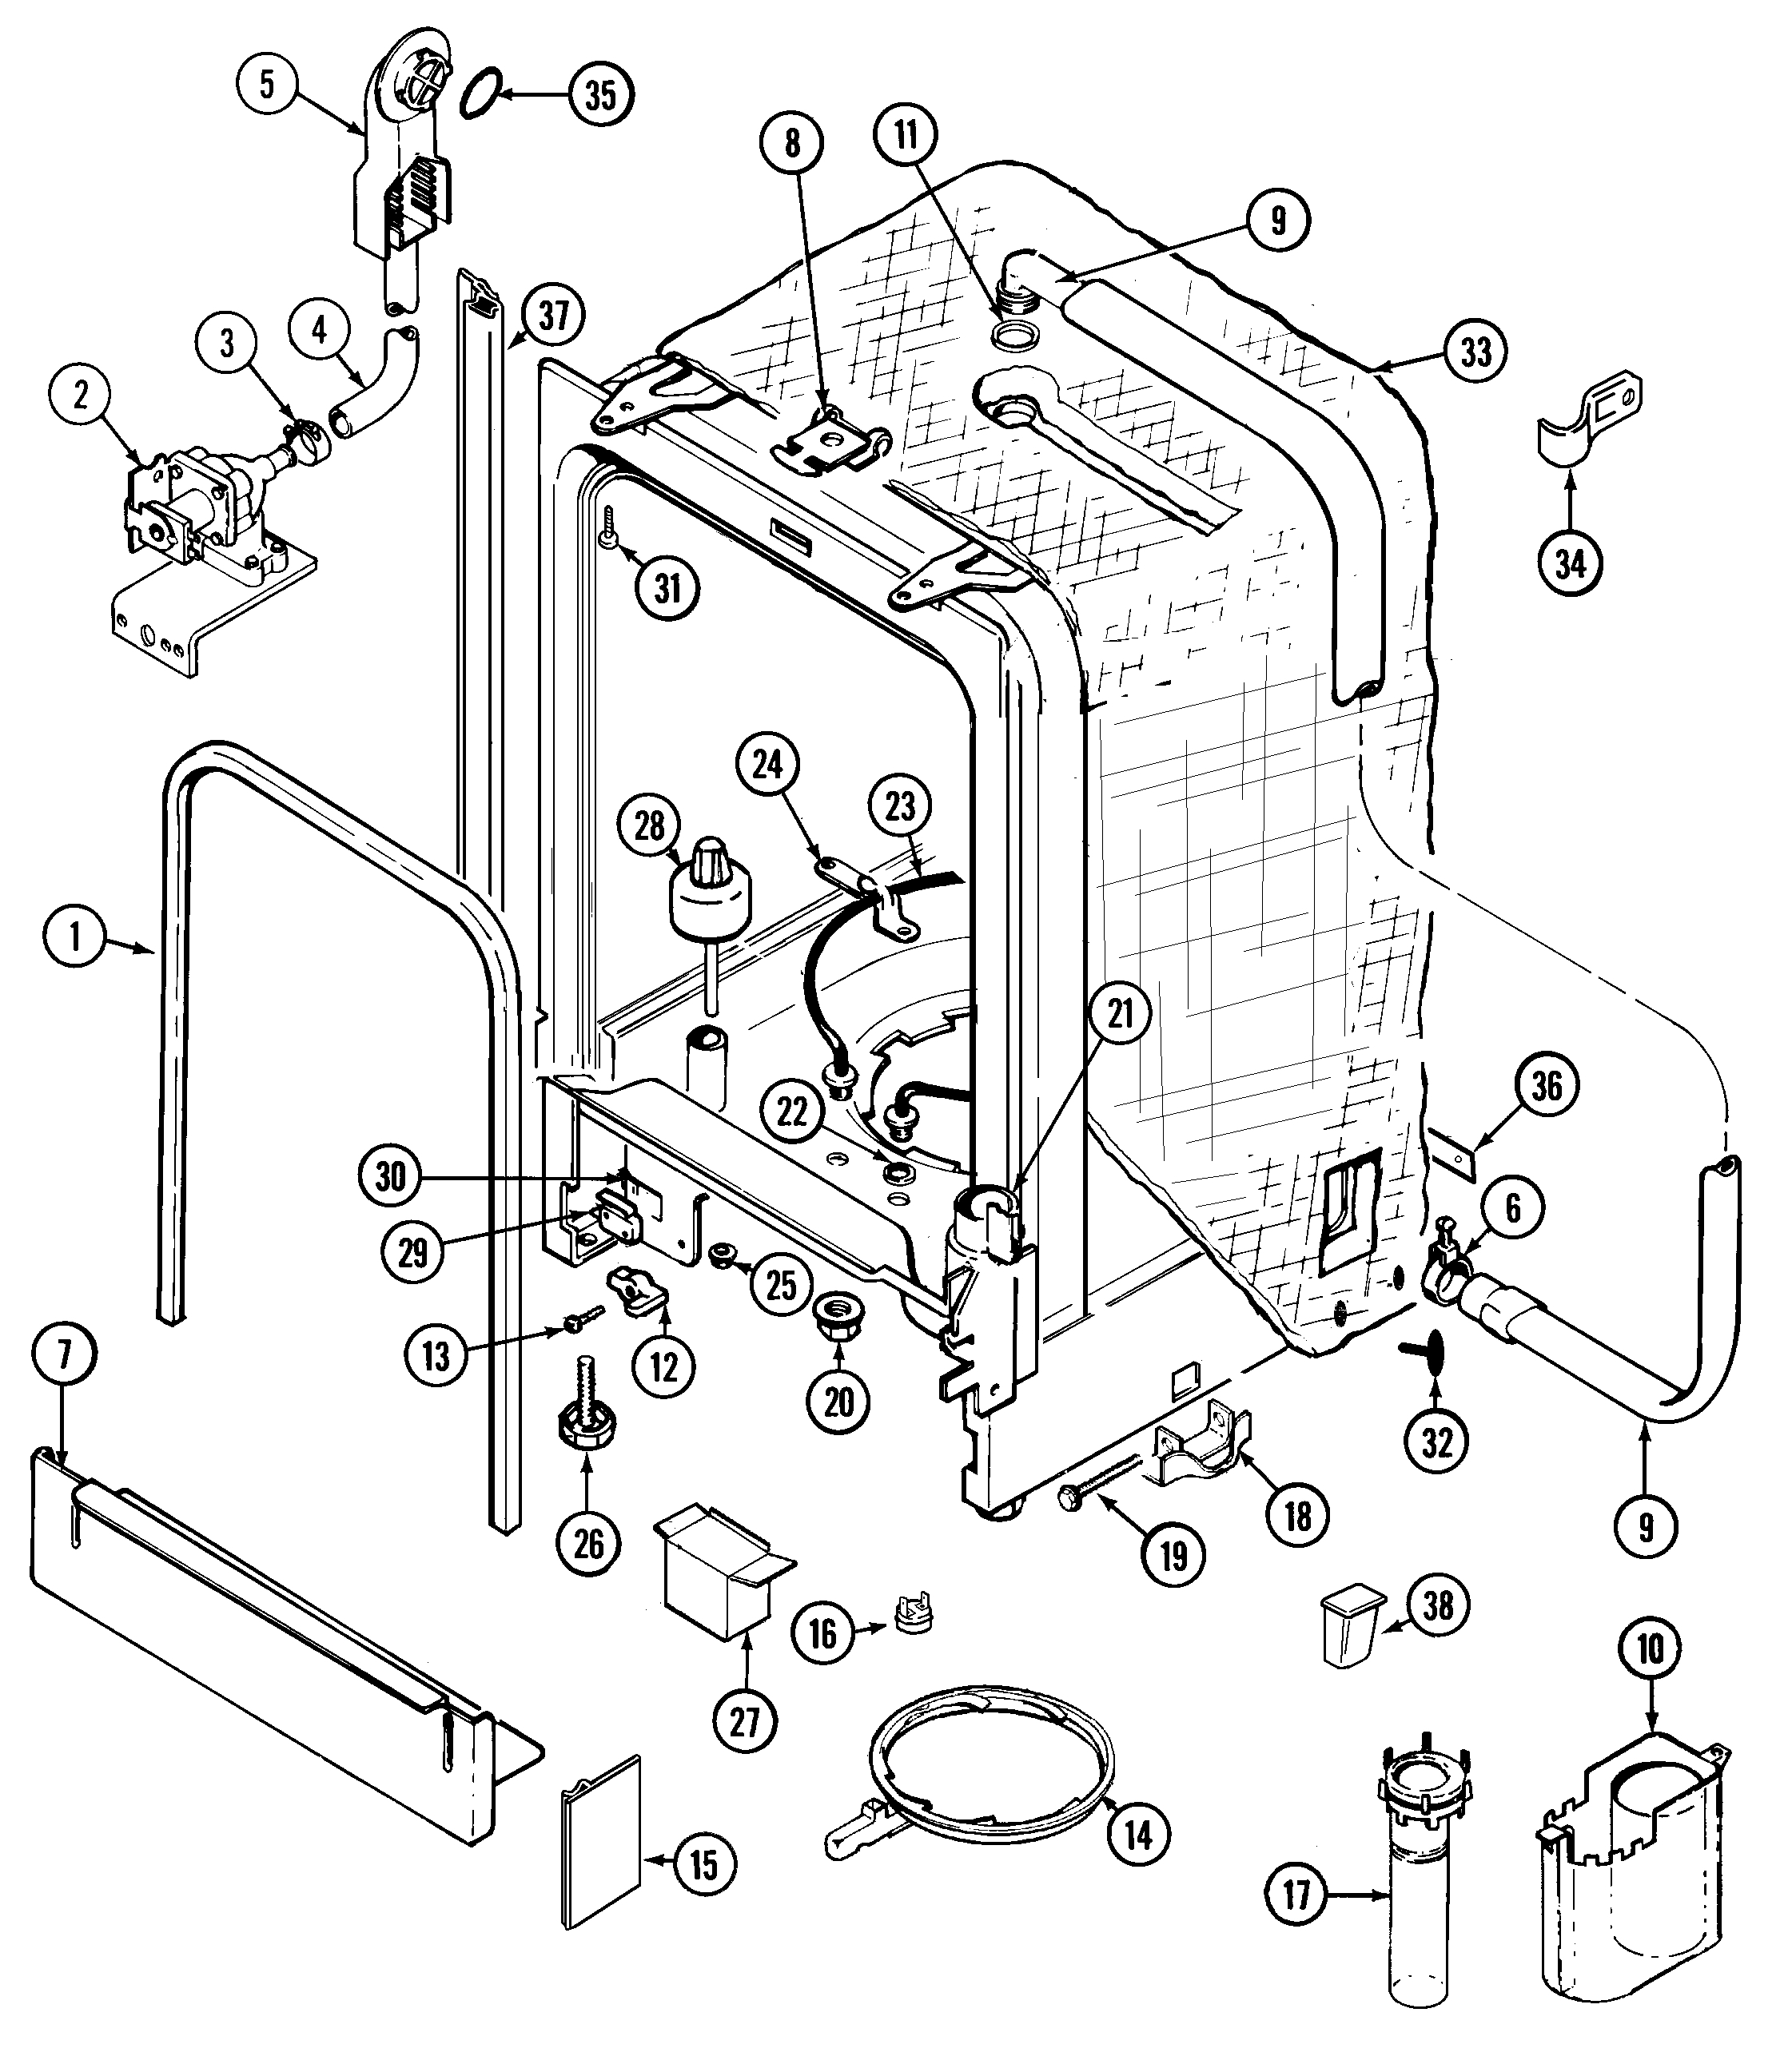 whirlpool gold dishwasher parts diagram